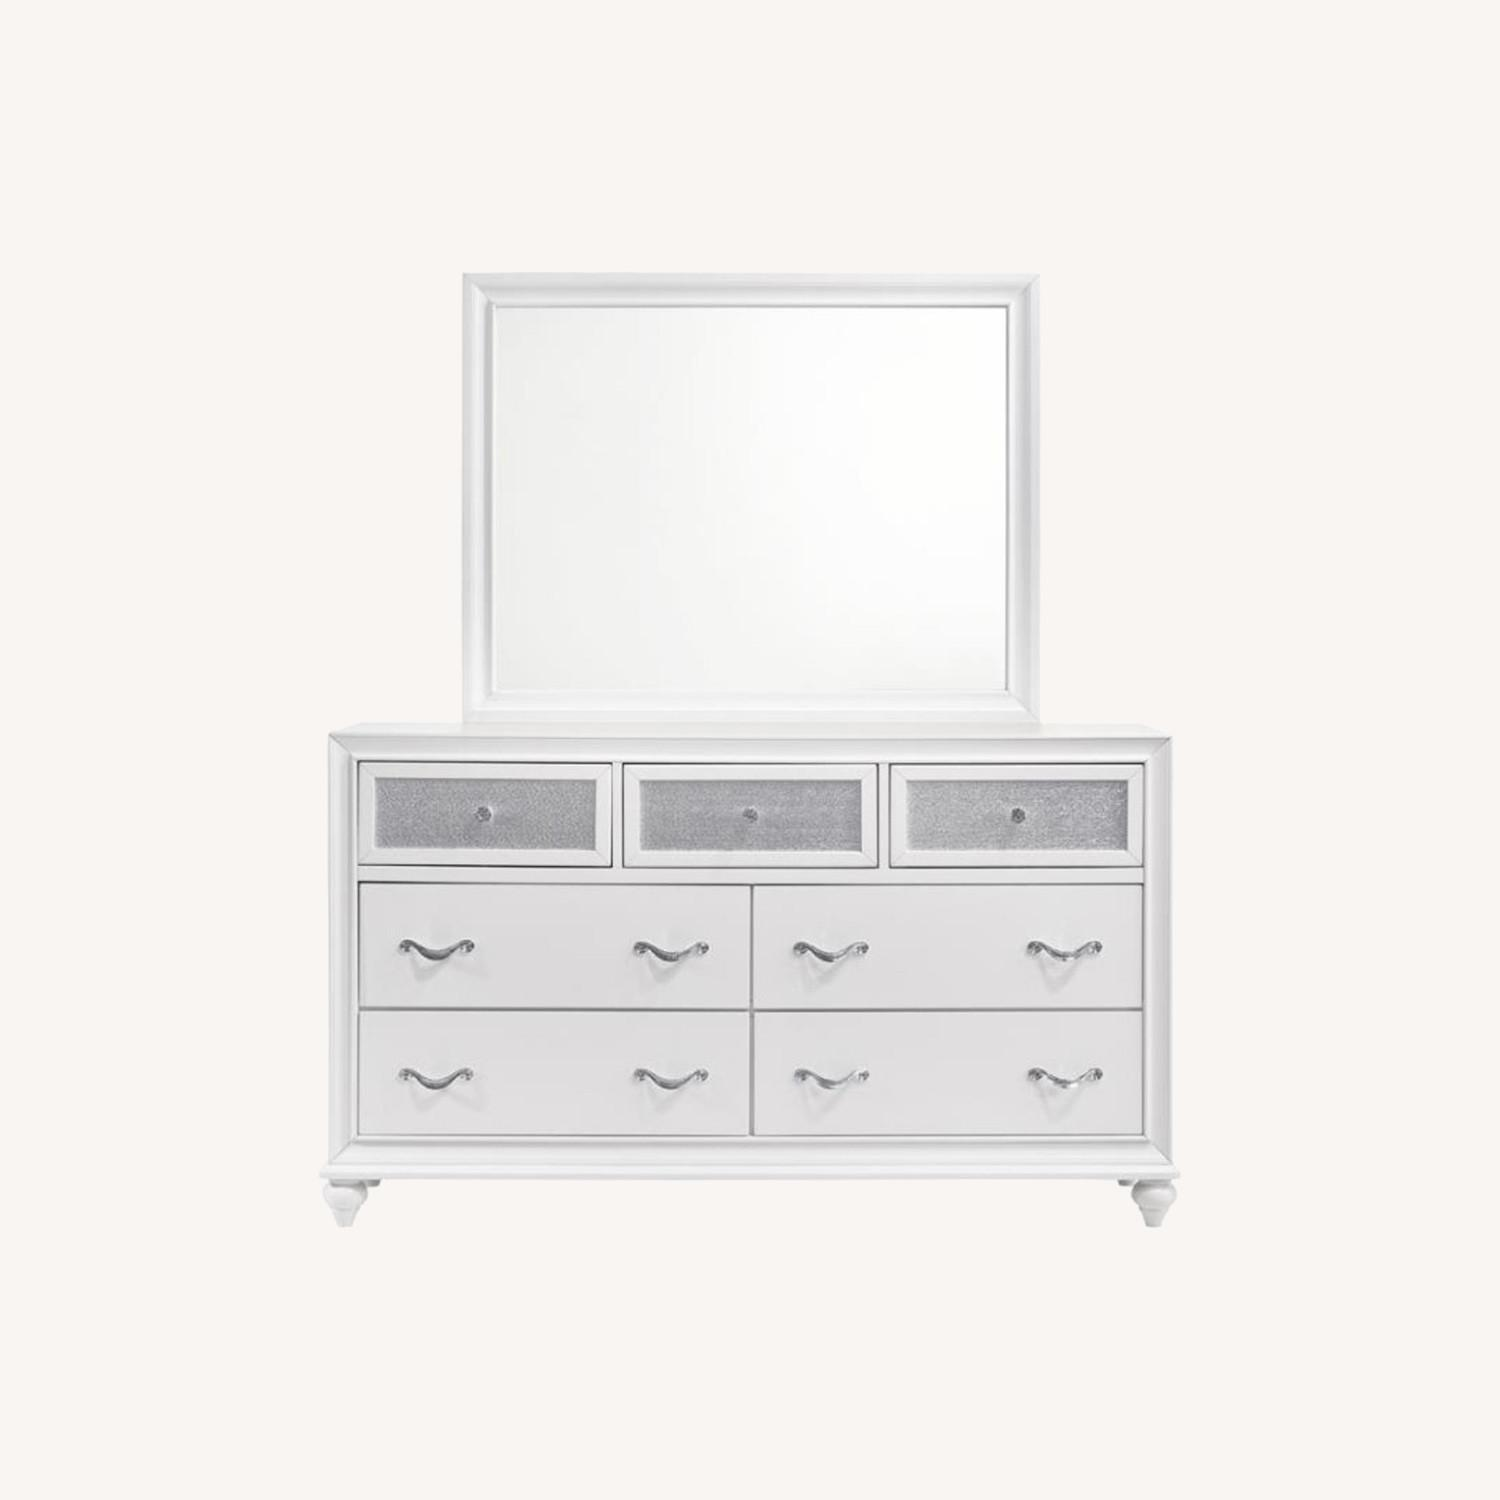 Mirror Crafted In White Wood Finish - image-4